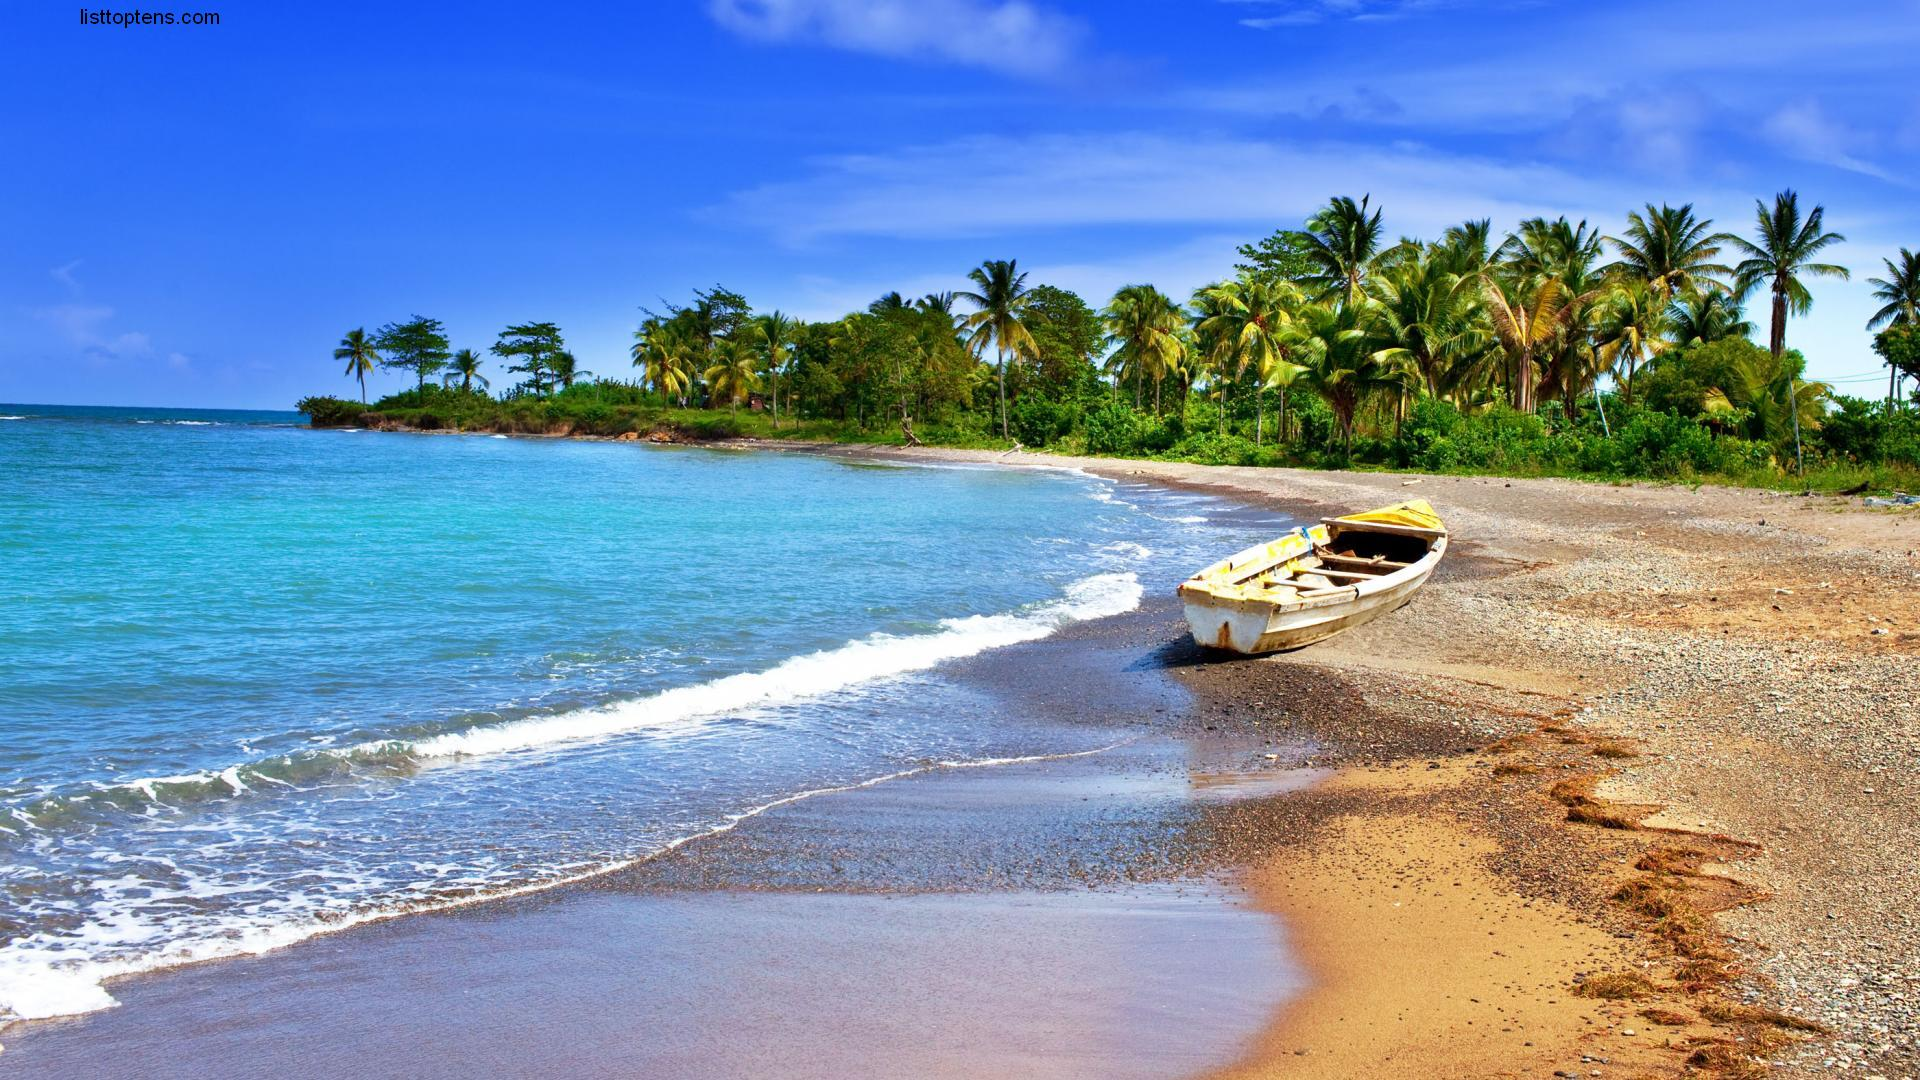 Top 10 most beautiful honeymoon destinations for Beach honeymoon destinations in the us